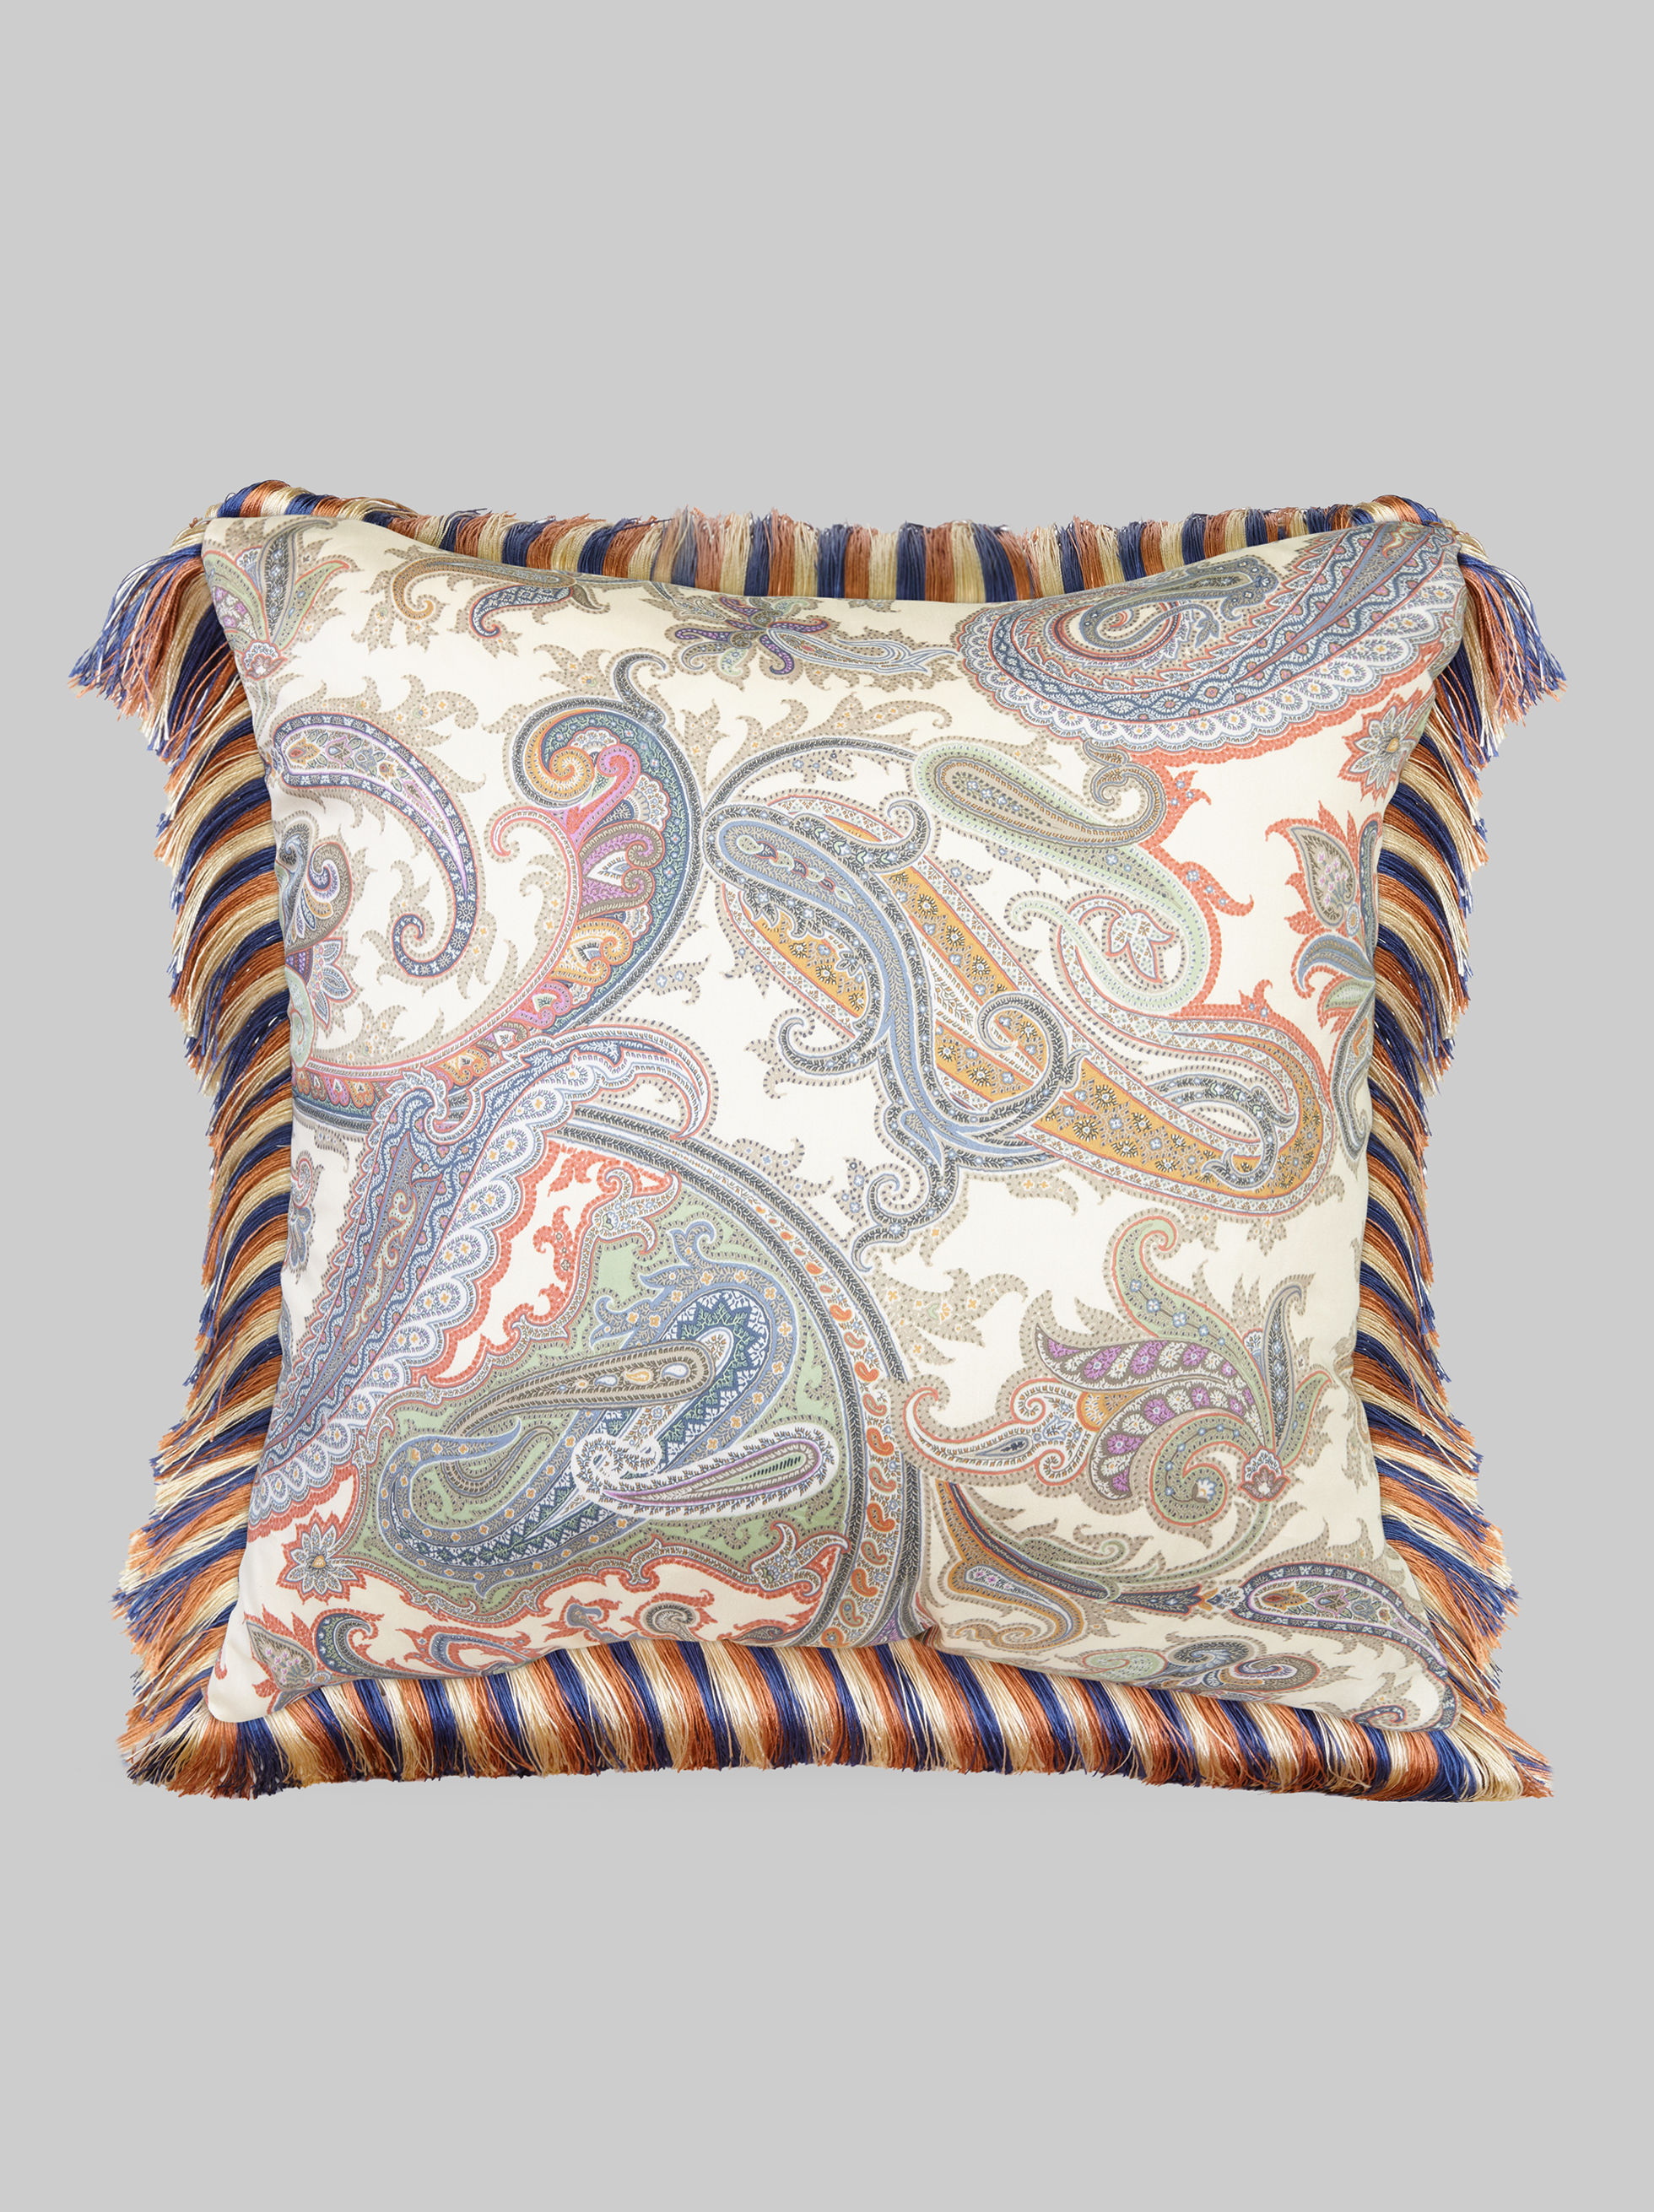 THROW PILLOW WITH FRINGE DETAILS